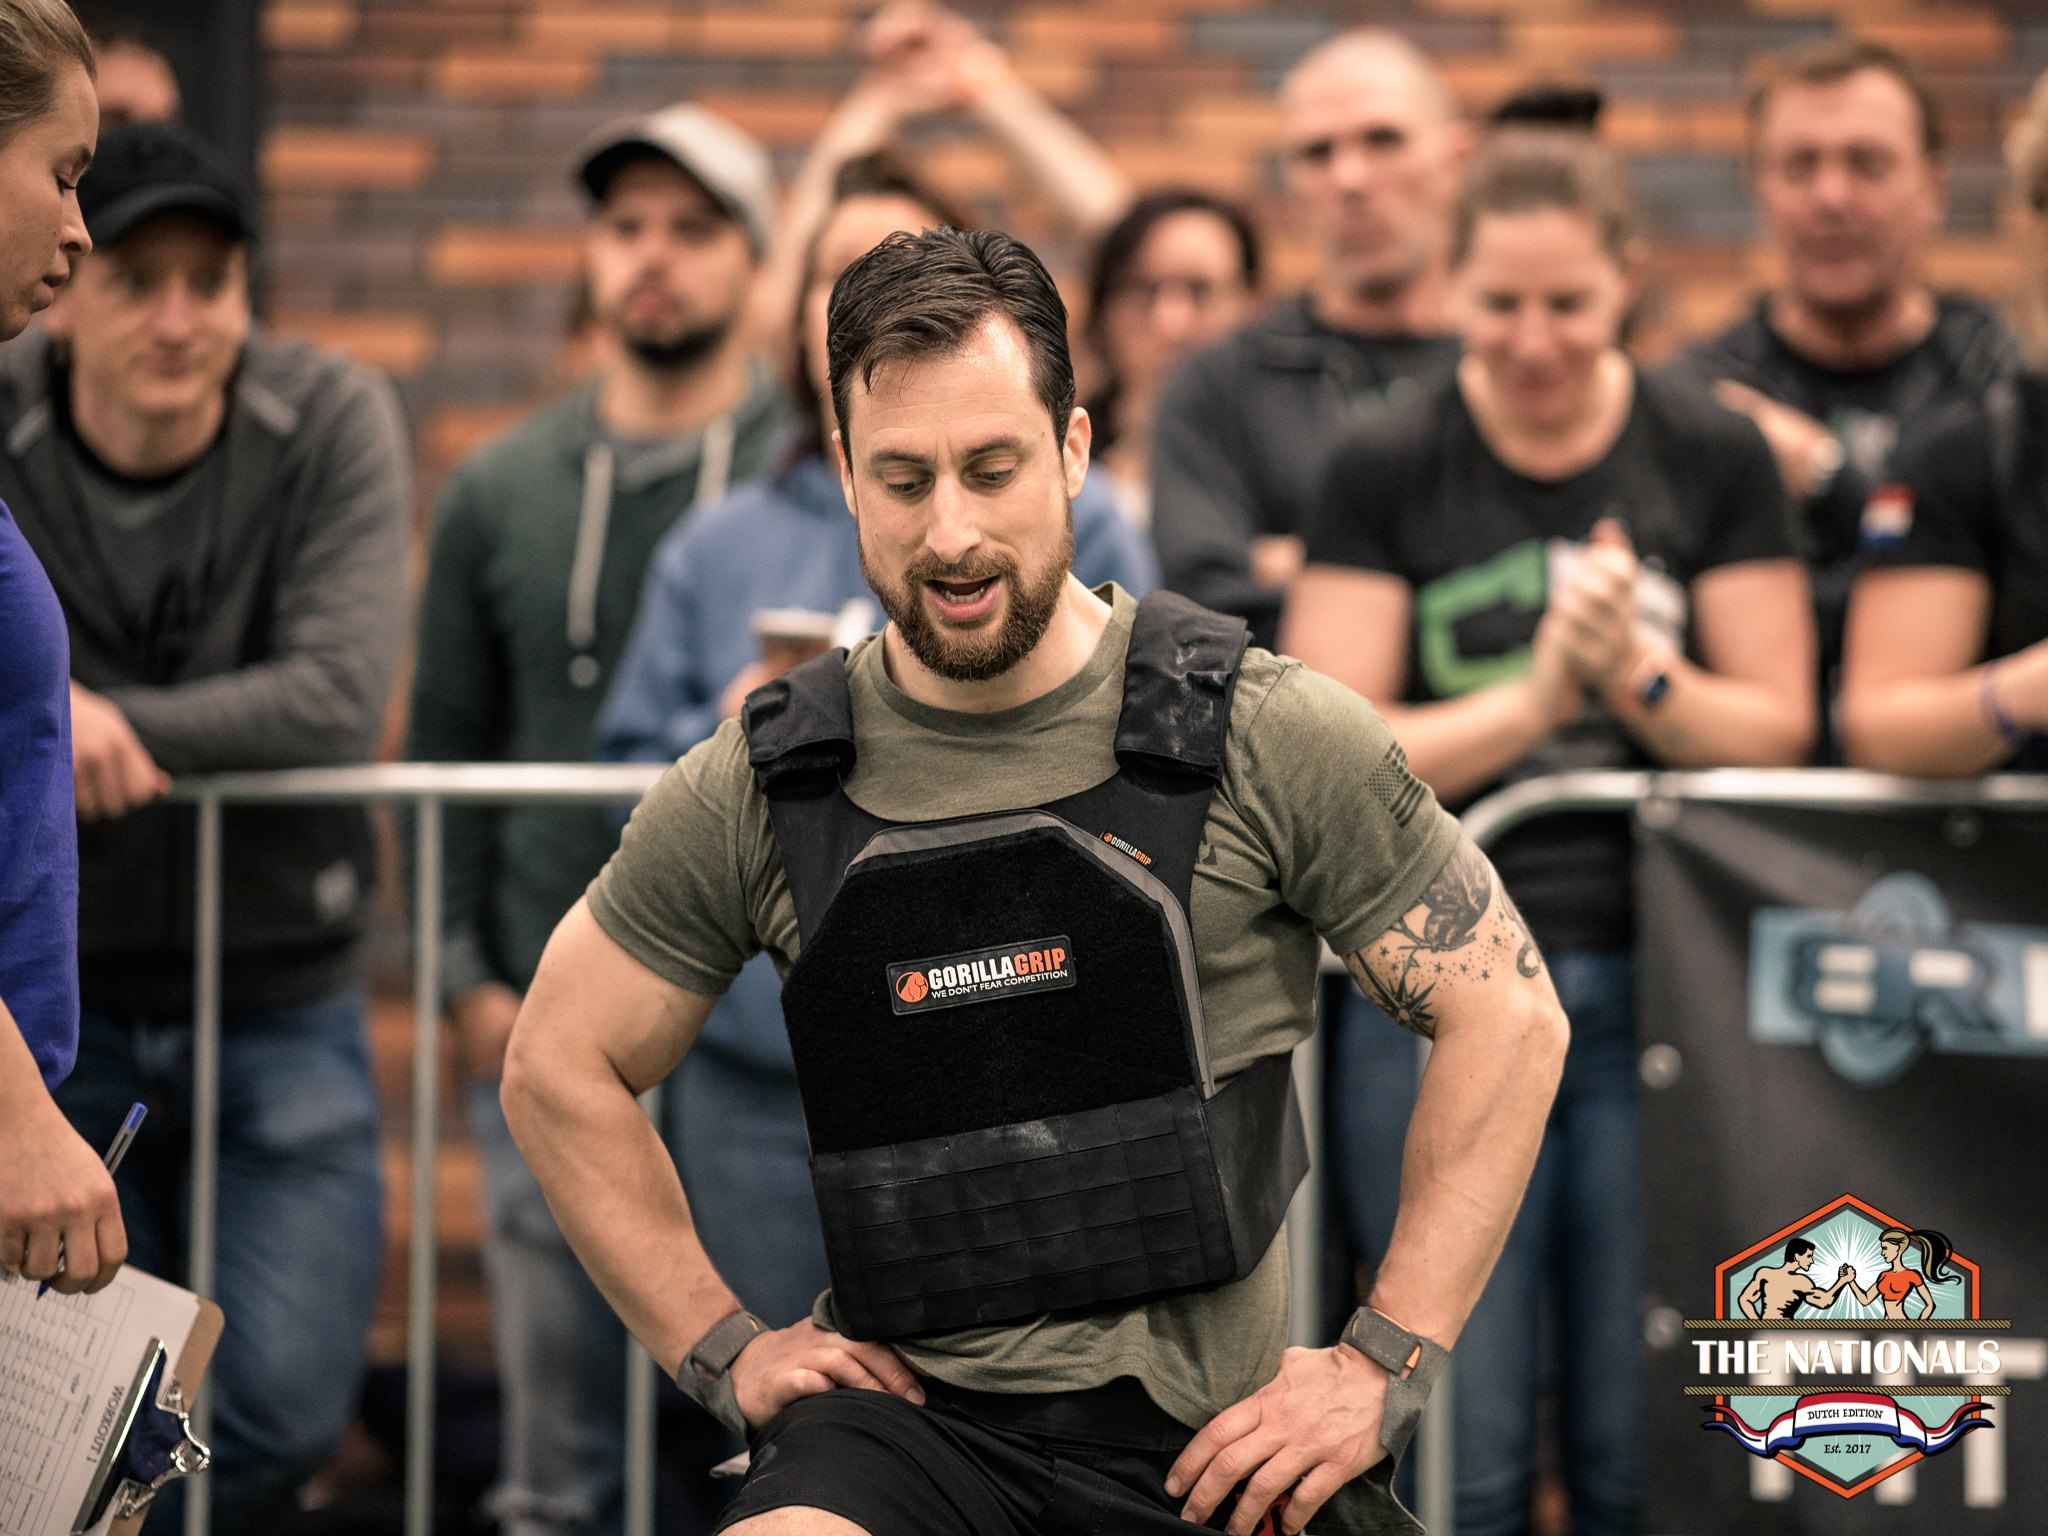 CrossFit Sliedrecht atleet wint finale The Nationals